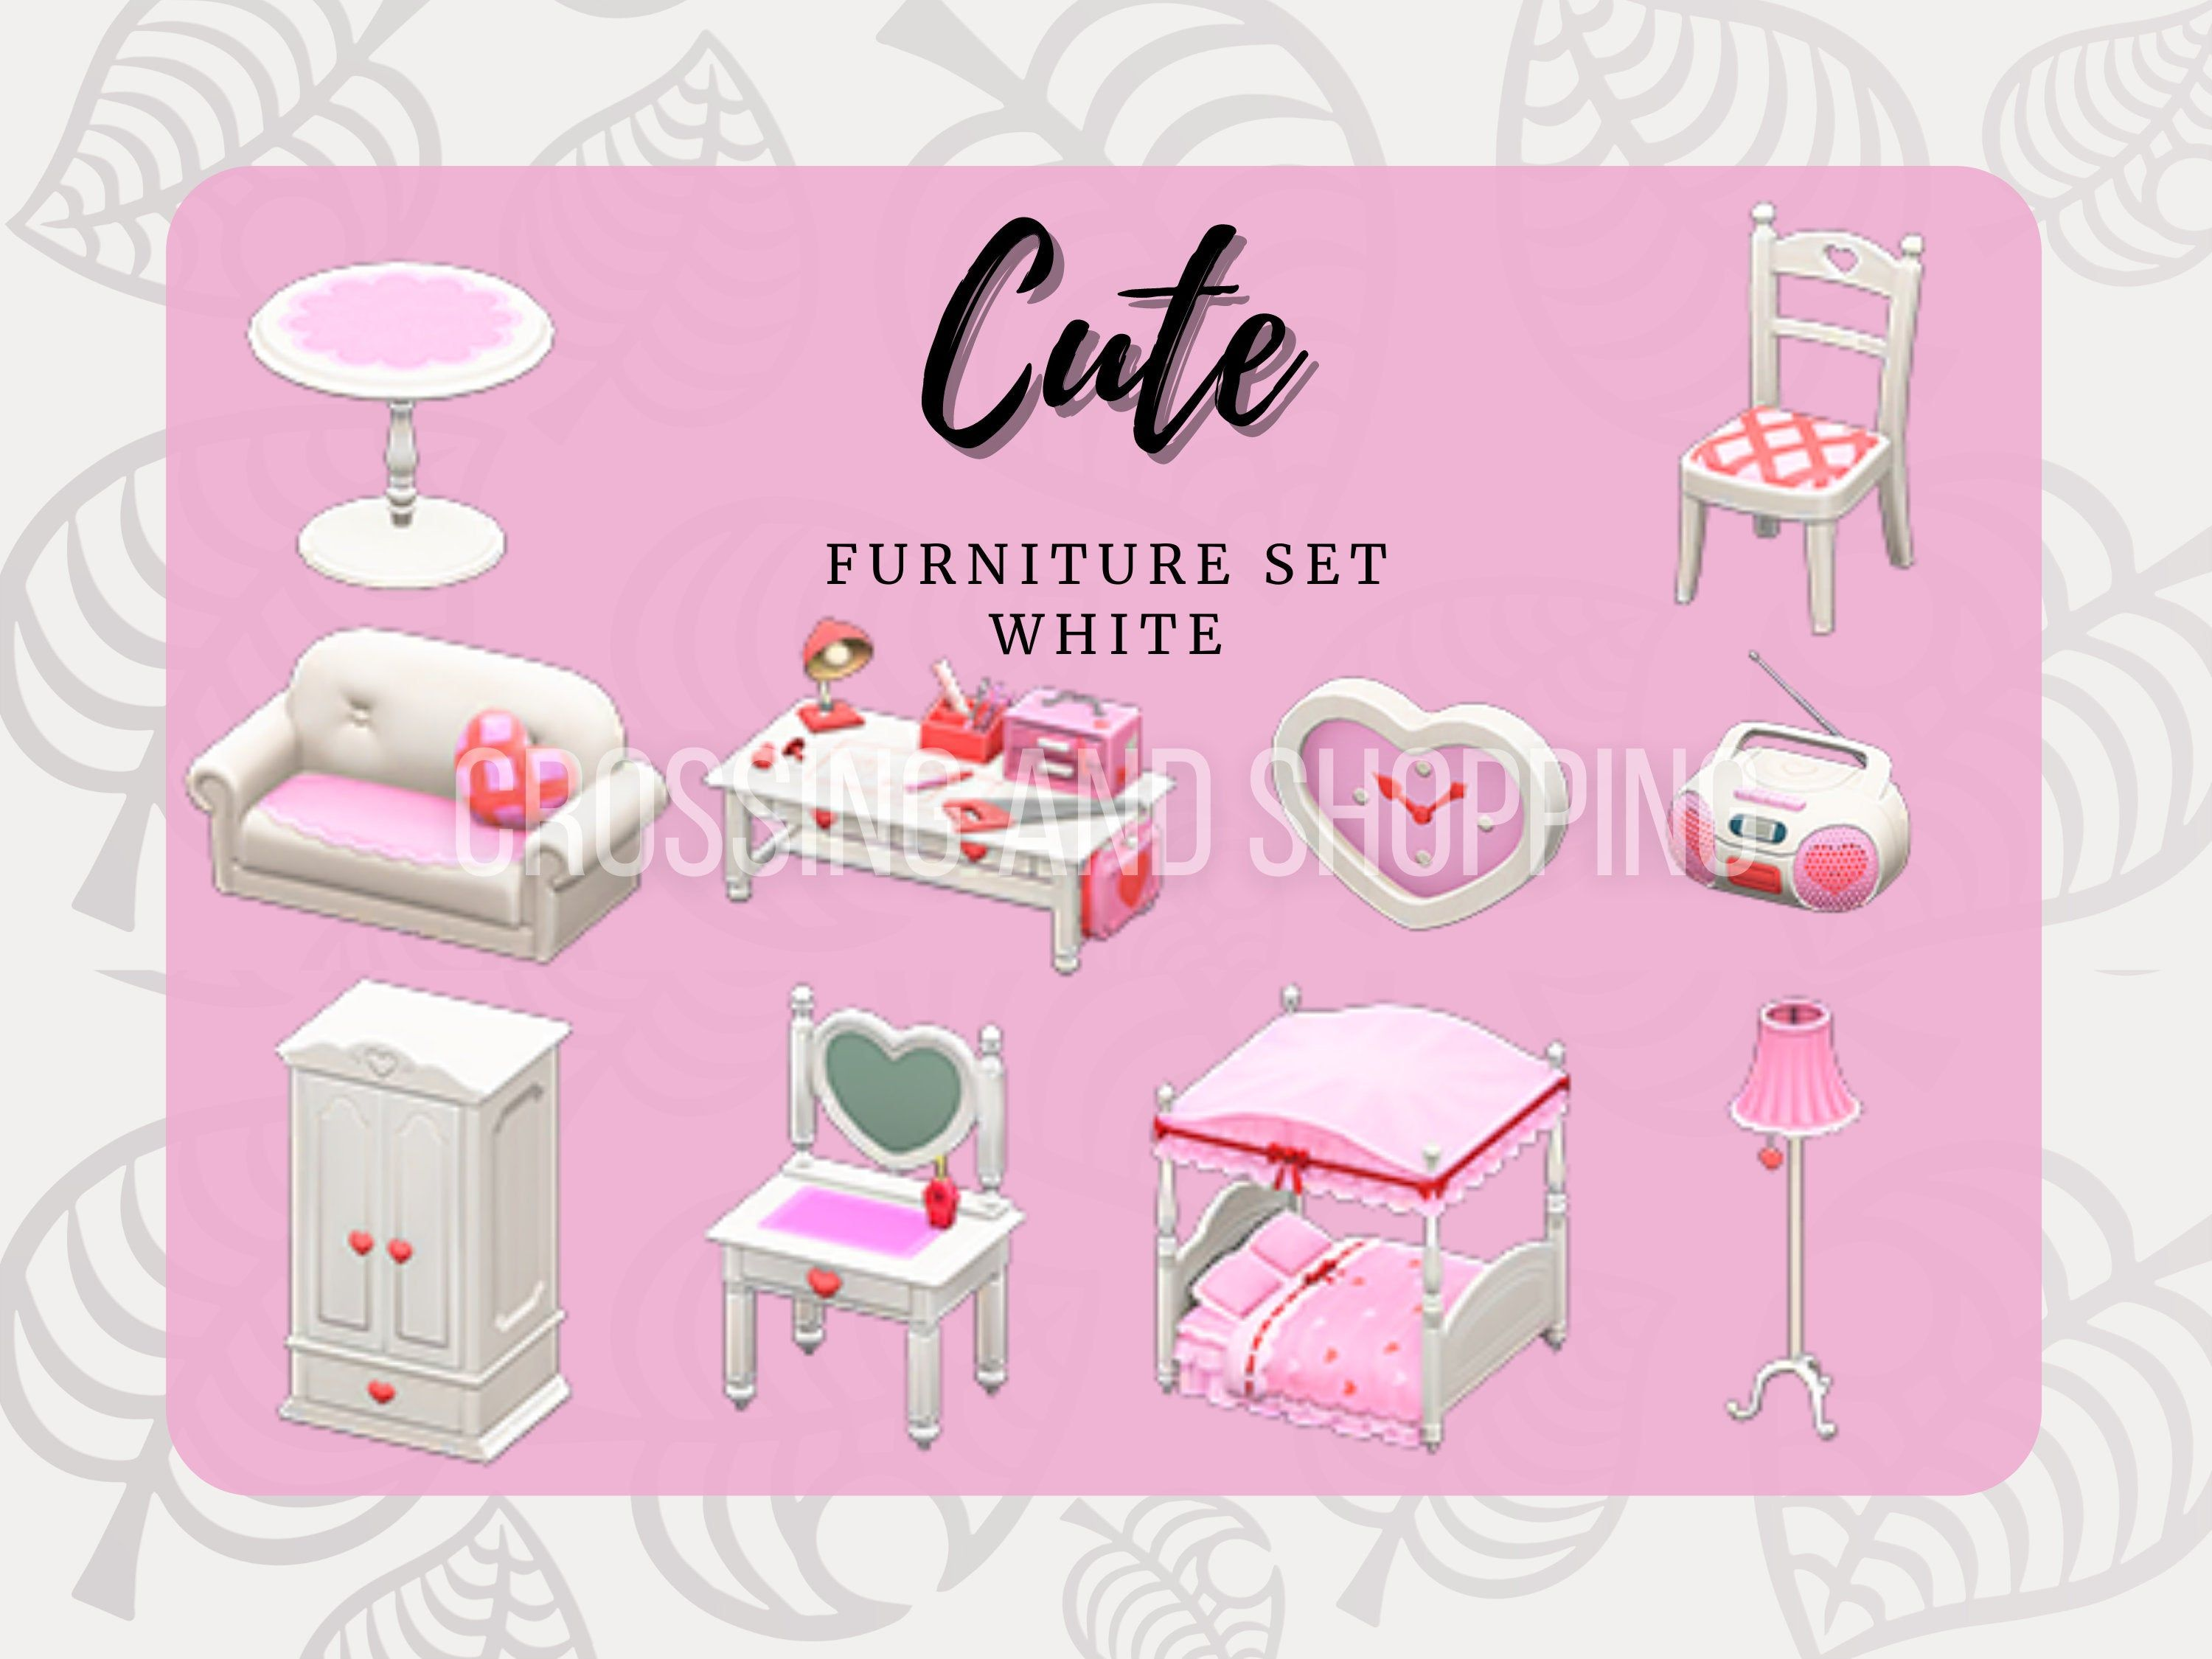 Animal Crossing Acnh Cute Full Furniture Sets All Colors By Crossingandshopping On Etsy Animal Crossing Animal Crossing Game Cute Furniture